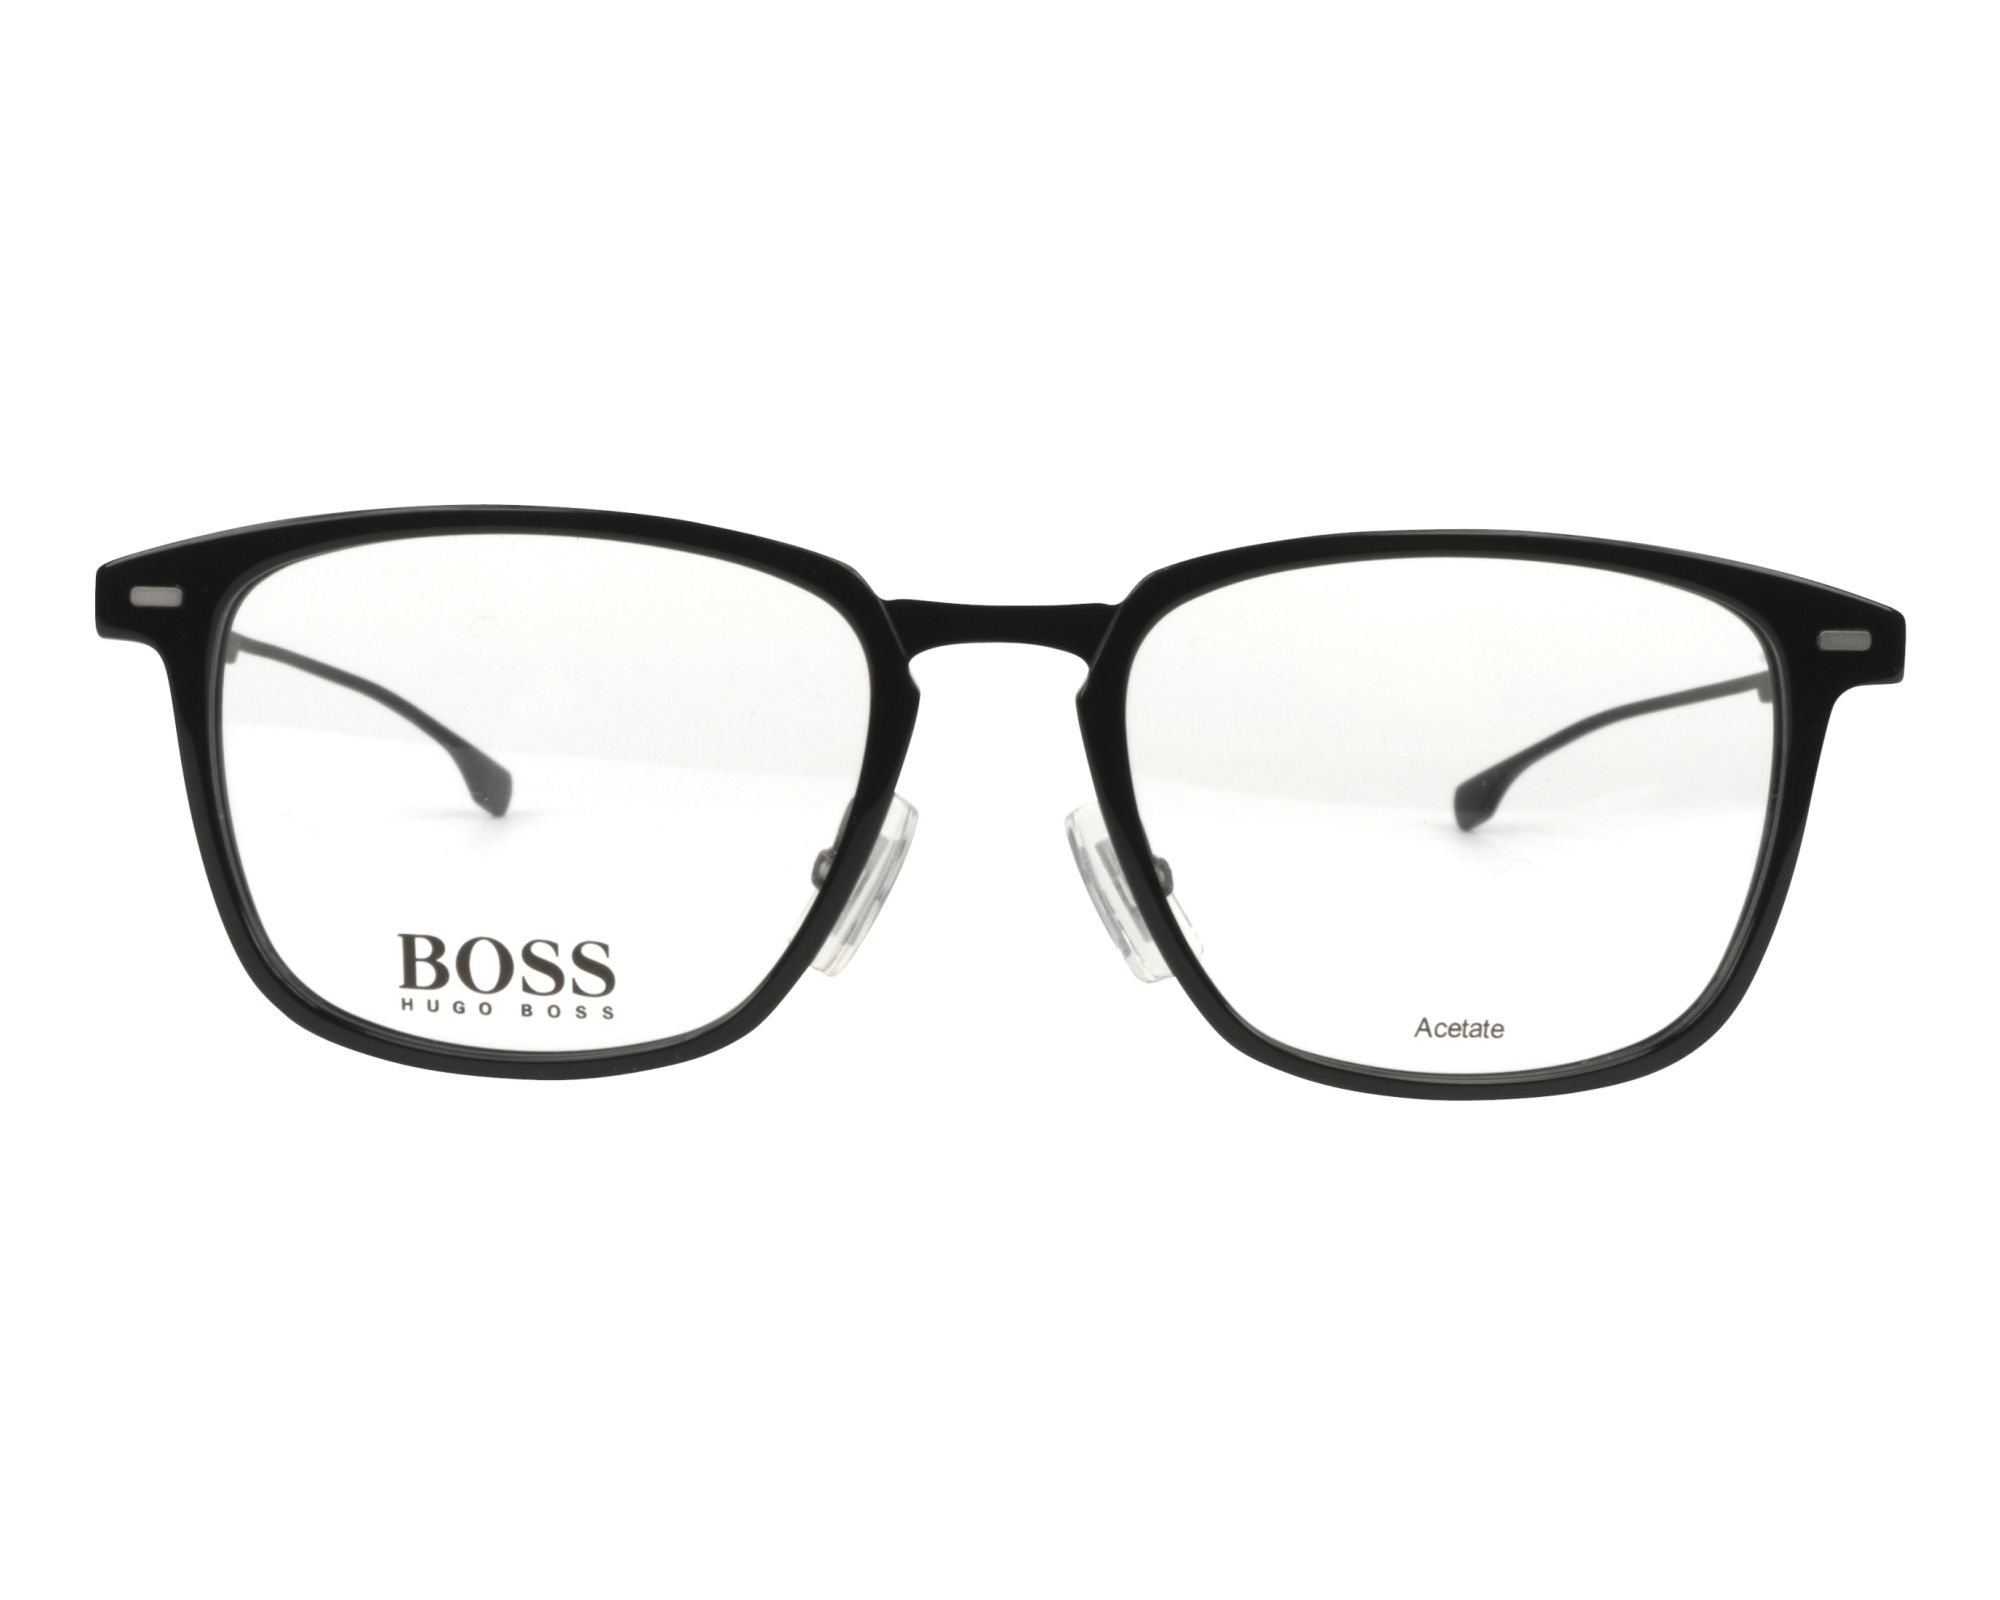 7845d2a982c eyeglasses Hugo Boss BOSS-0975 807 51-18 Black Gun front view